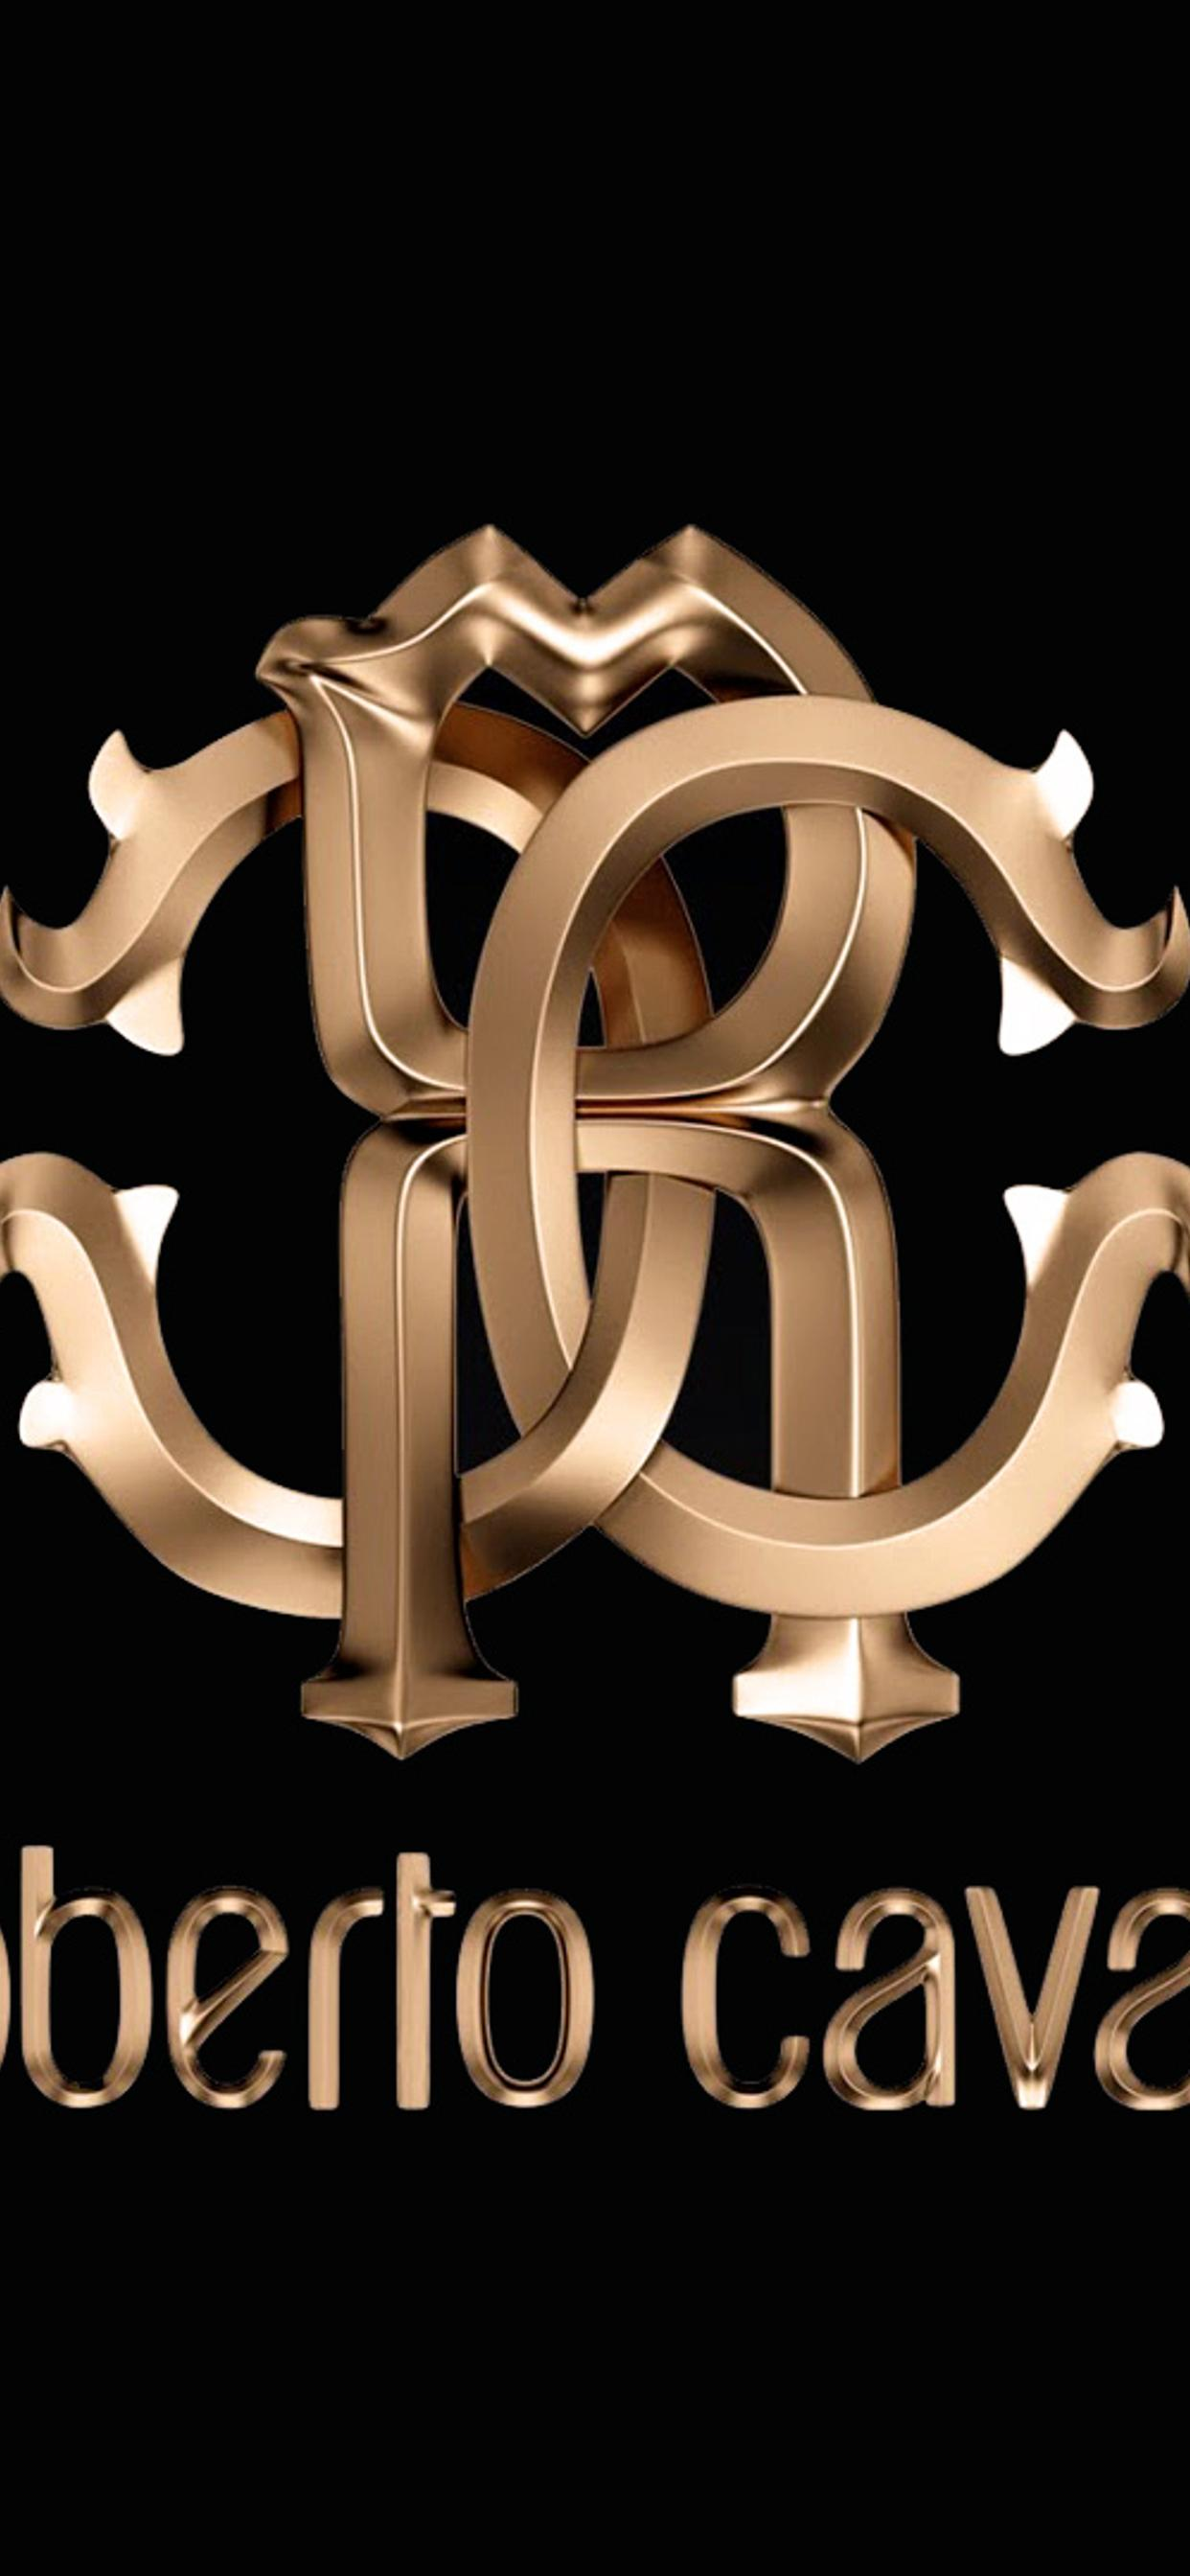 Luxury Roberto Cavalli Brand Gold Logo On The Wallpaper